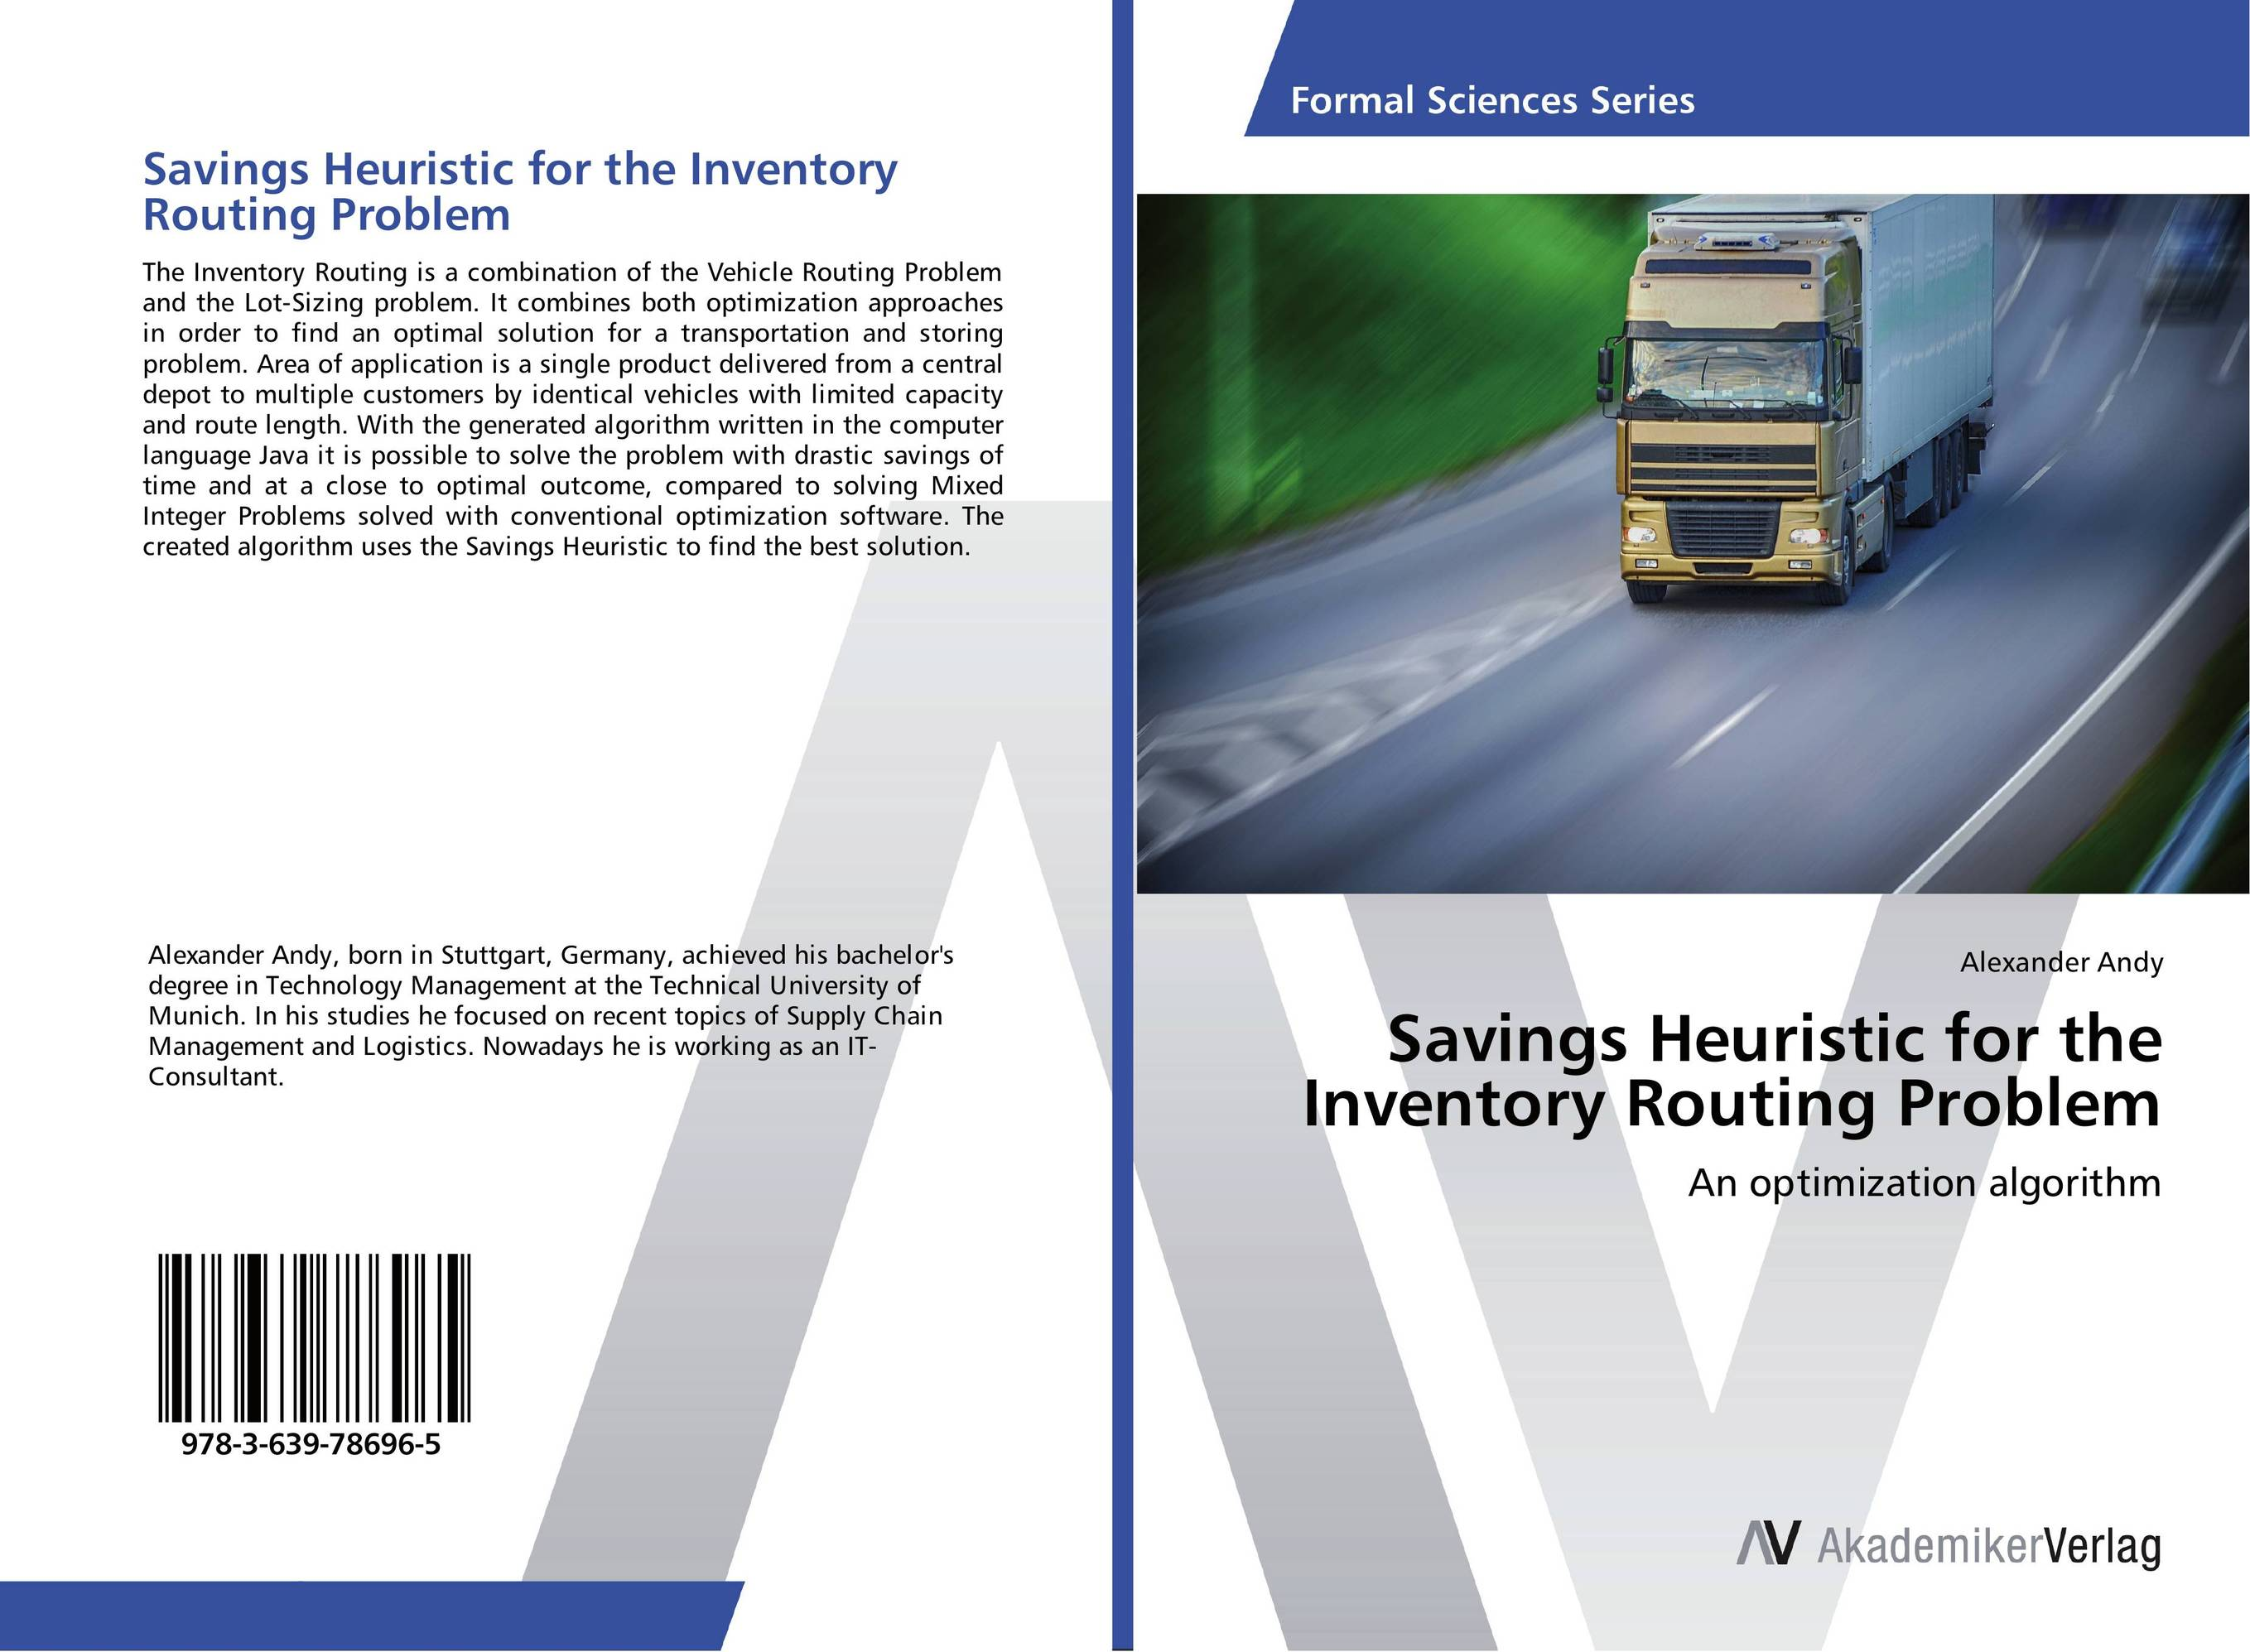 Savings Heuristic for the Inventory Routing Problem robert davis a demand driven inventory optimization and replenishment creating a more efficient supply chain